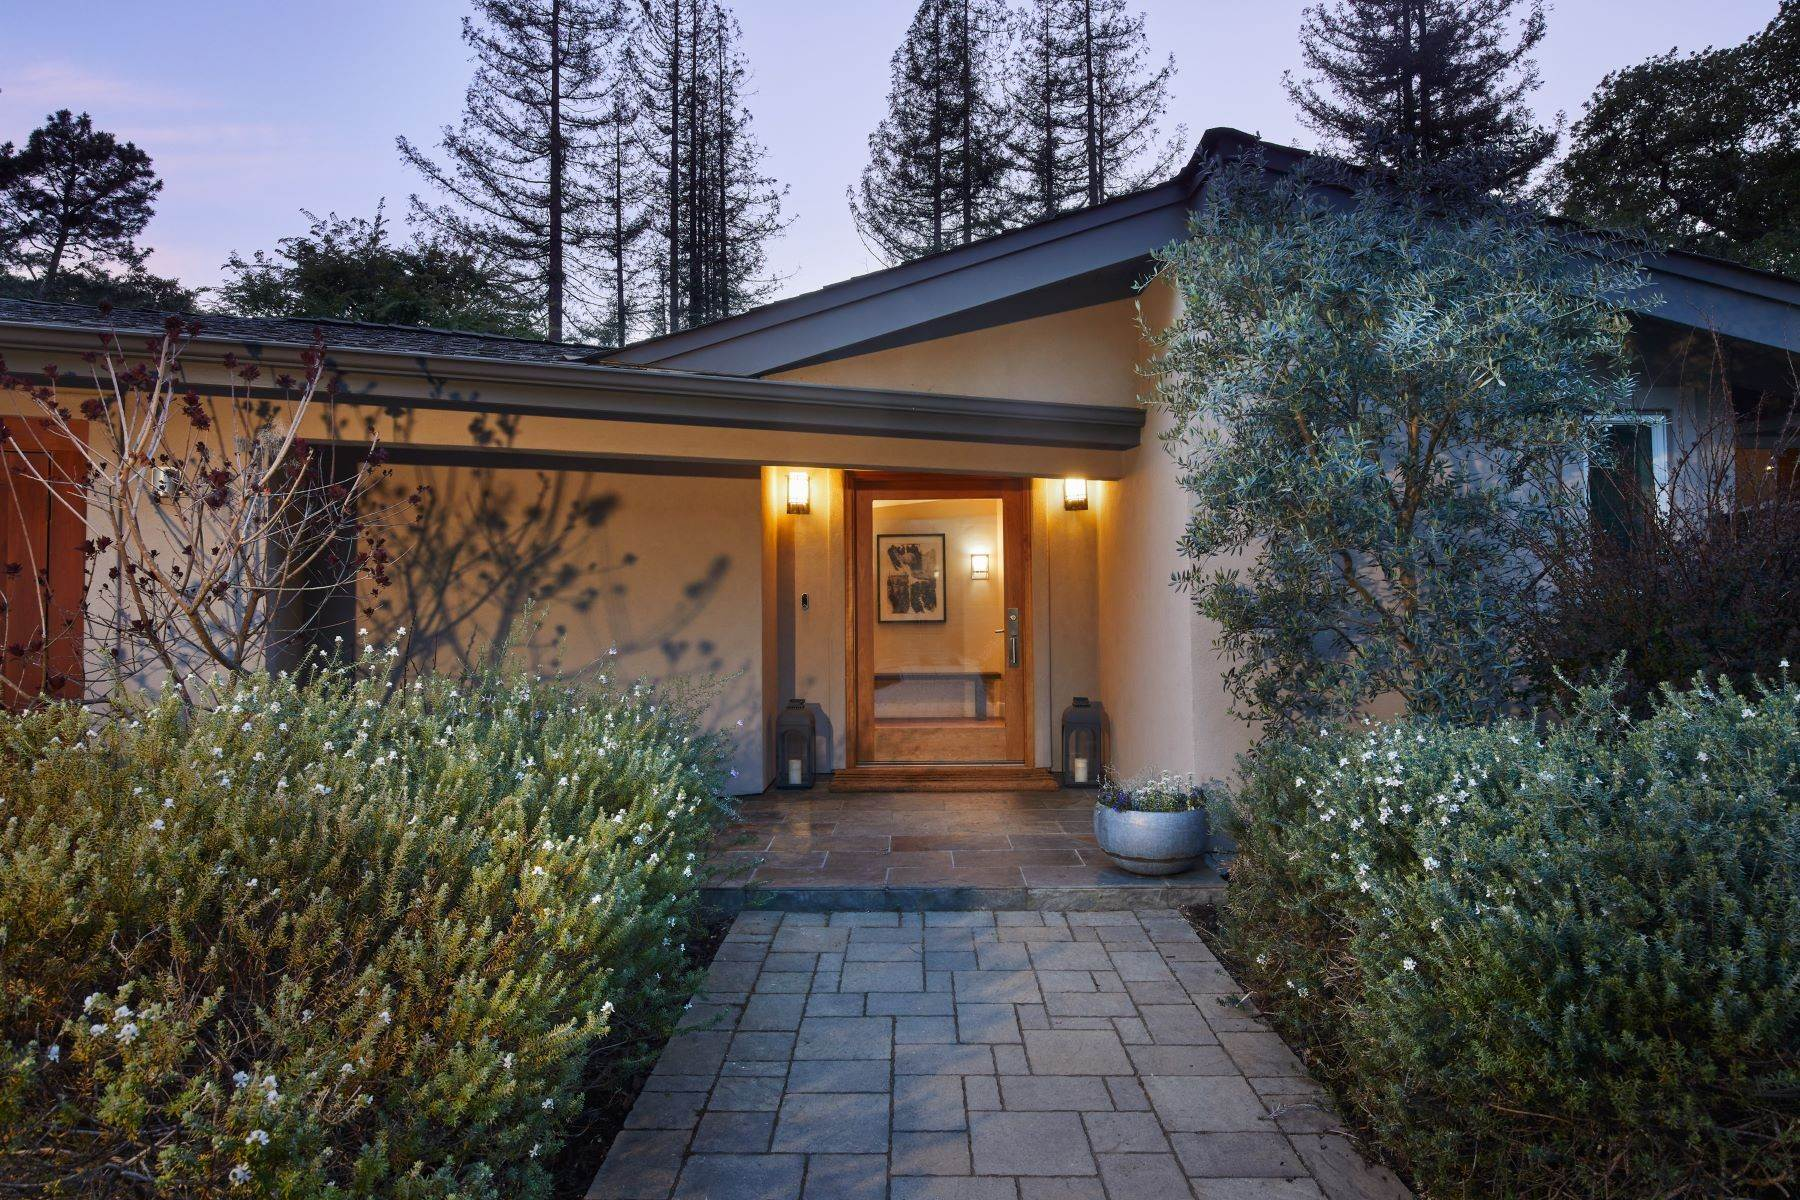 2. Single Family Homes for Sale at Modern Portola Valley Ranch Home 30 Firethorn Way Portola Valley, California 94028 United States